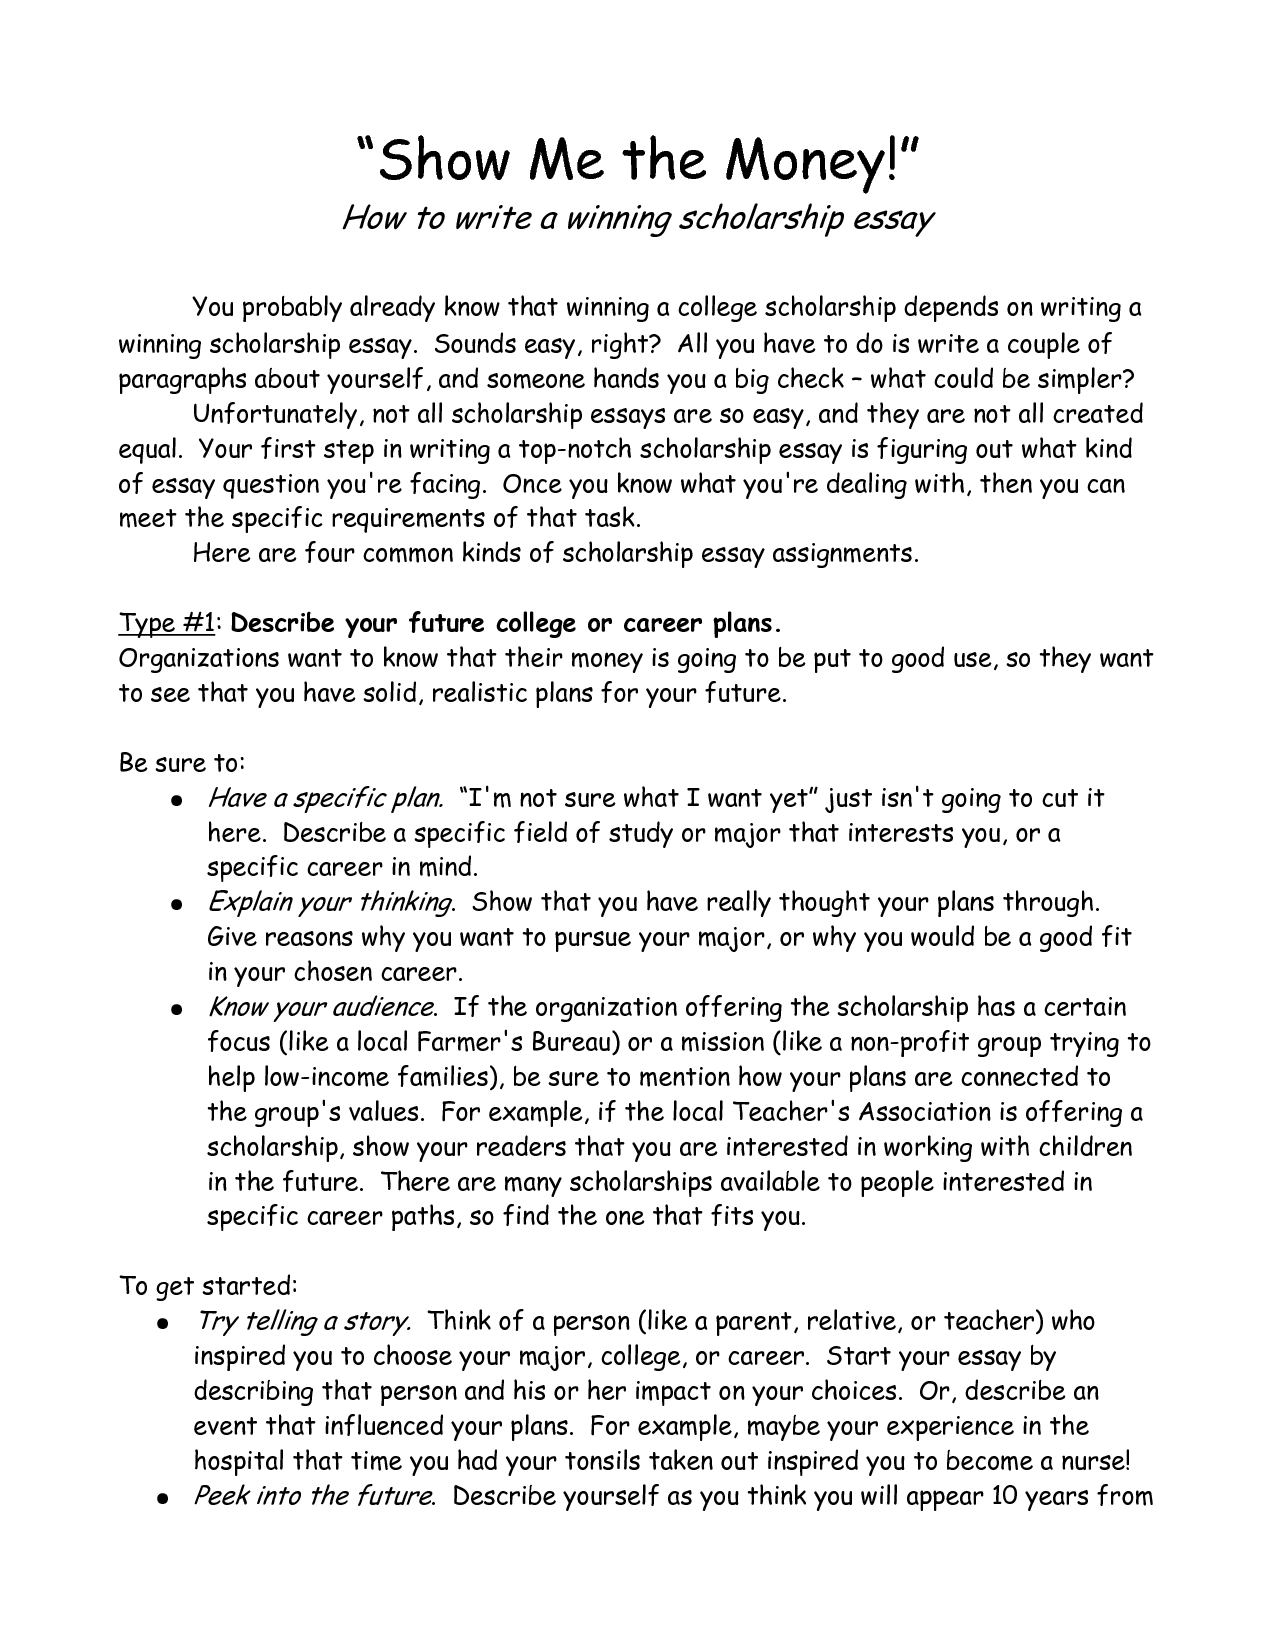 002 Scholarship Essay Sample Example Stunning Samples For College Students Pdf About Why I Deserve The Full